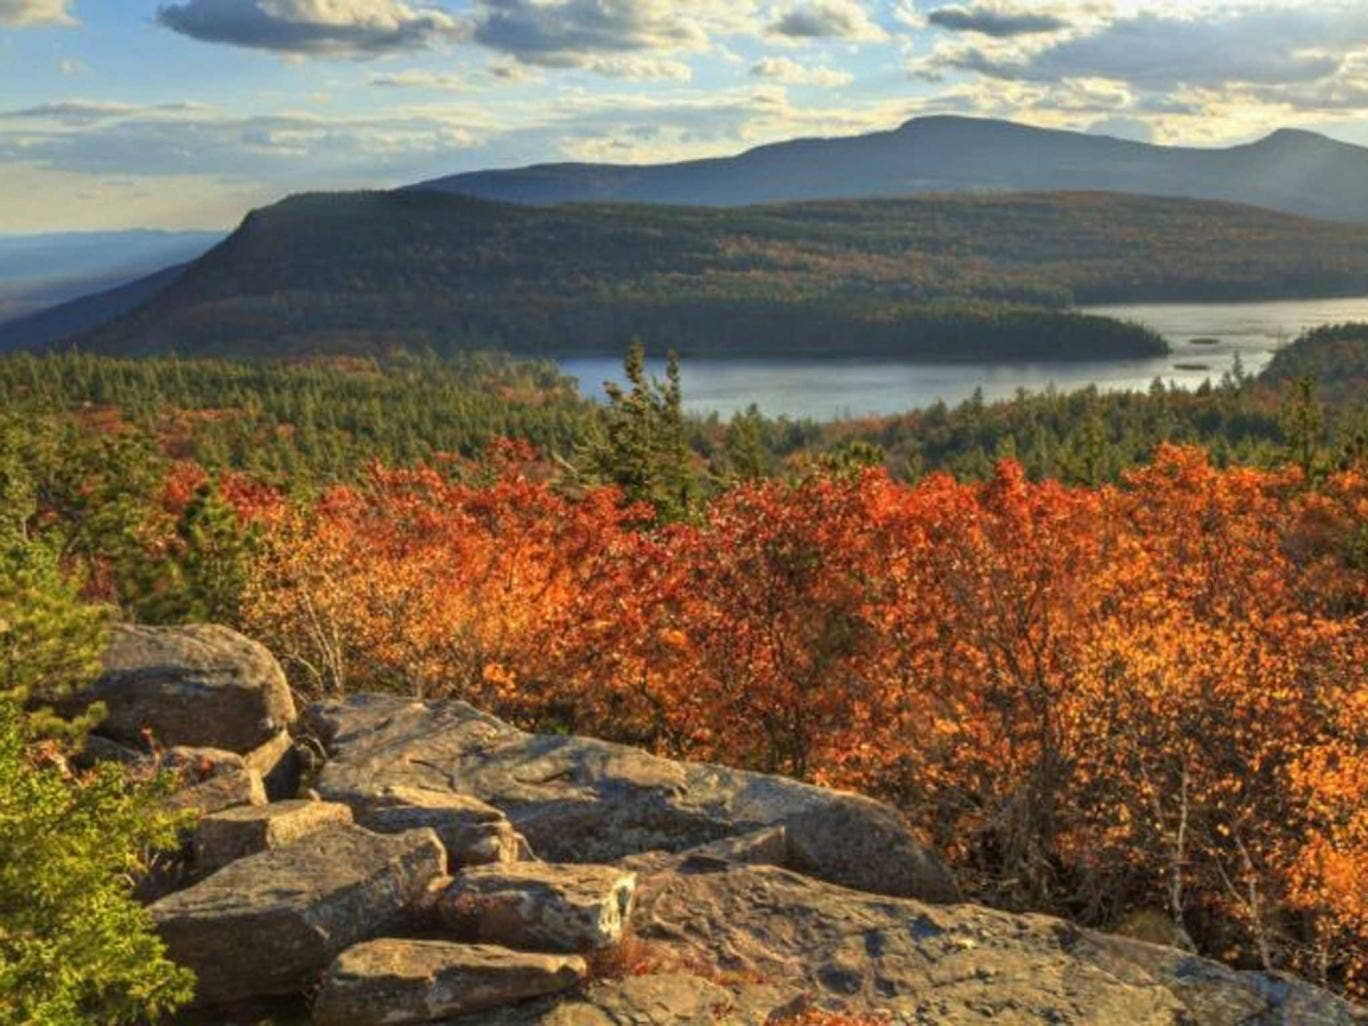 State visit: Lakes and mountains of the Catskills